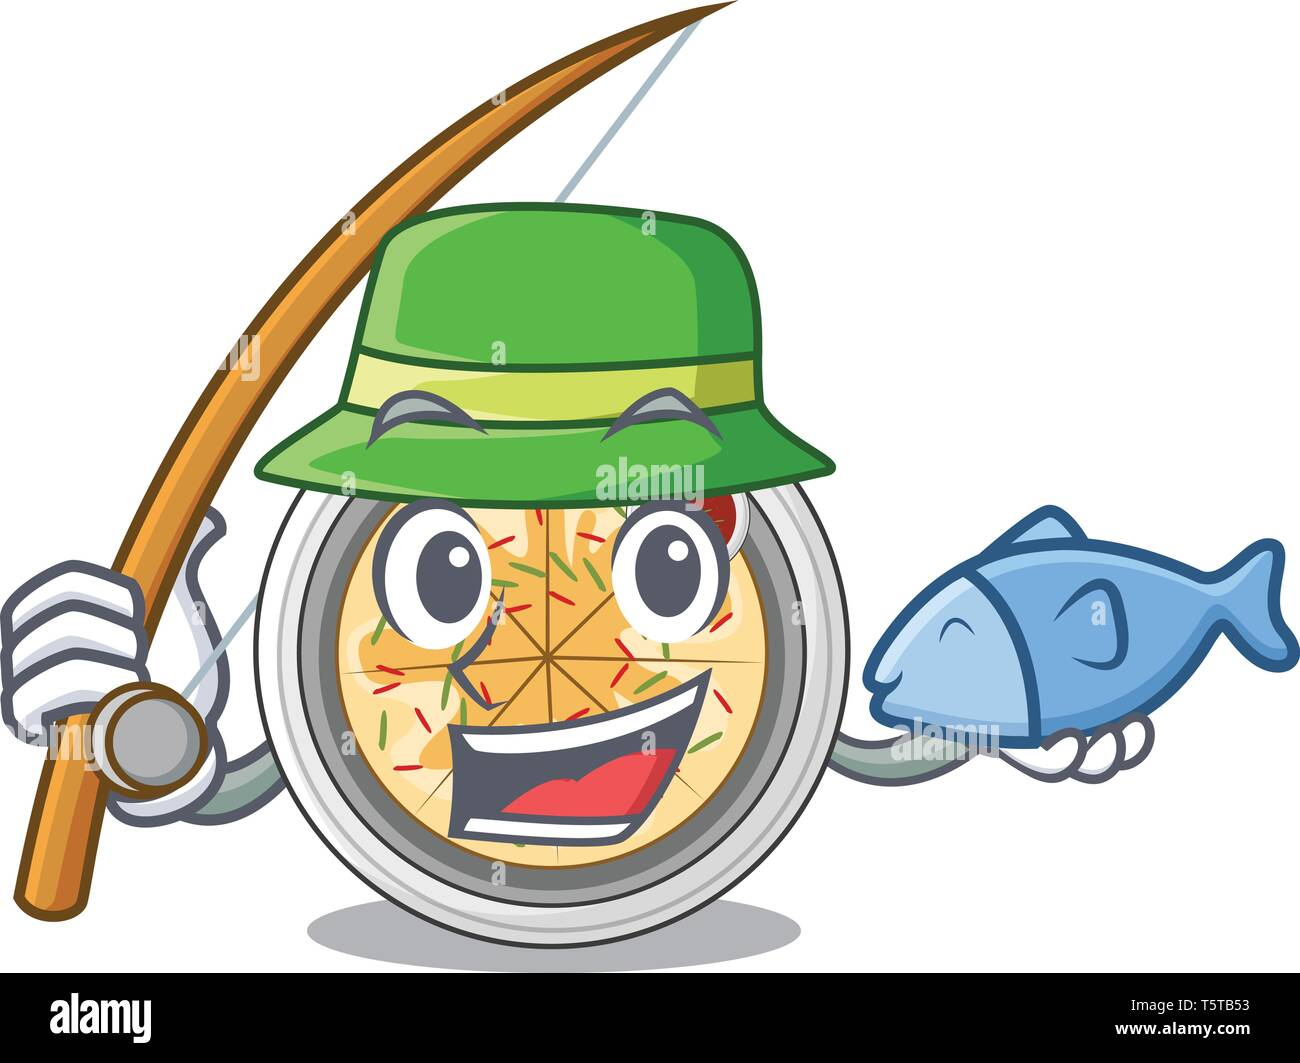 Fishing buchimgae isolated with in the mascot - Stock Vector